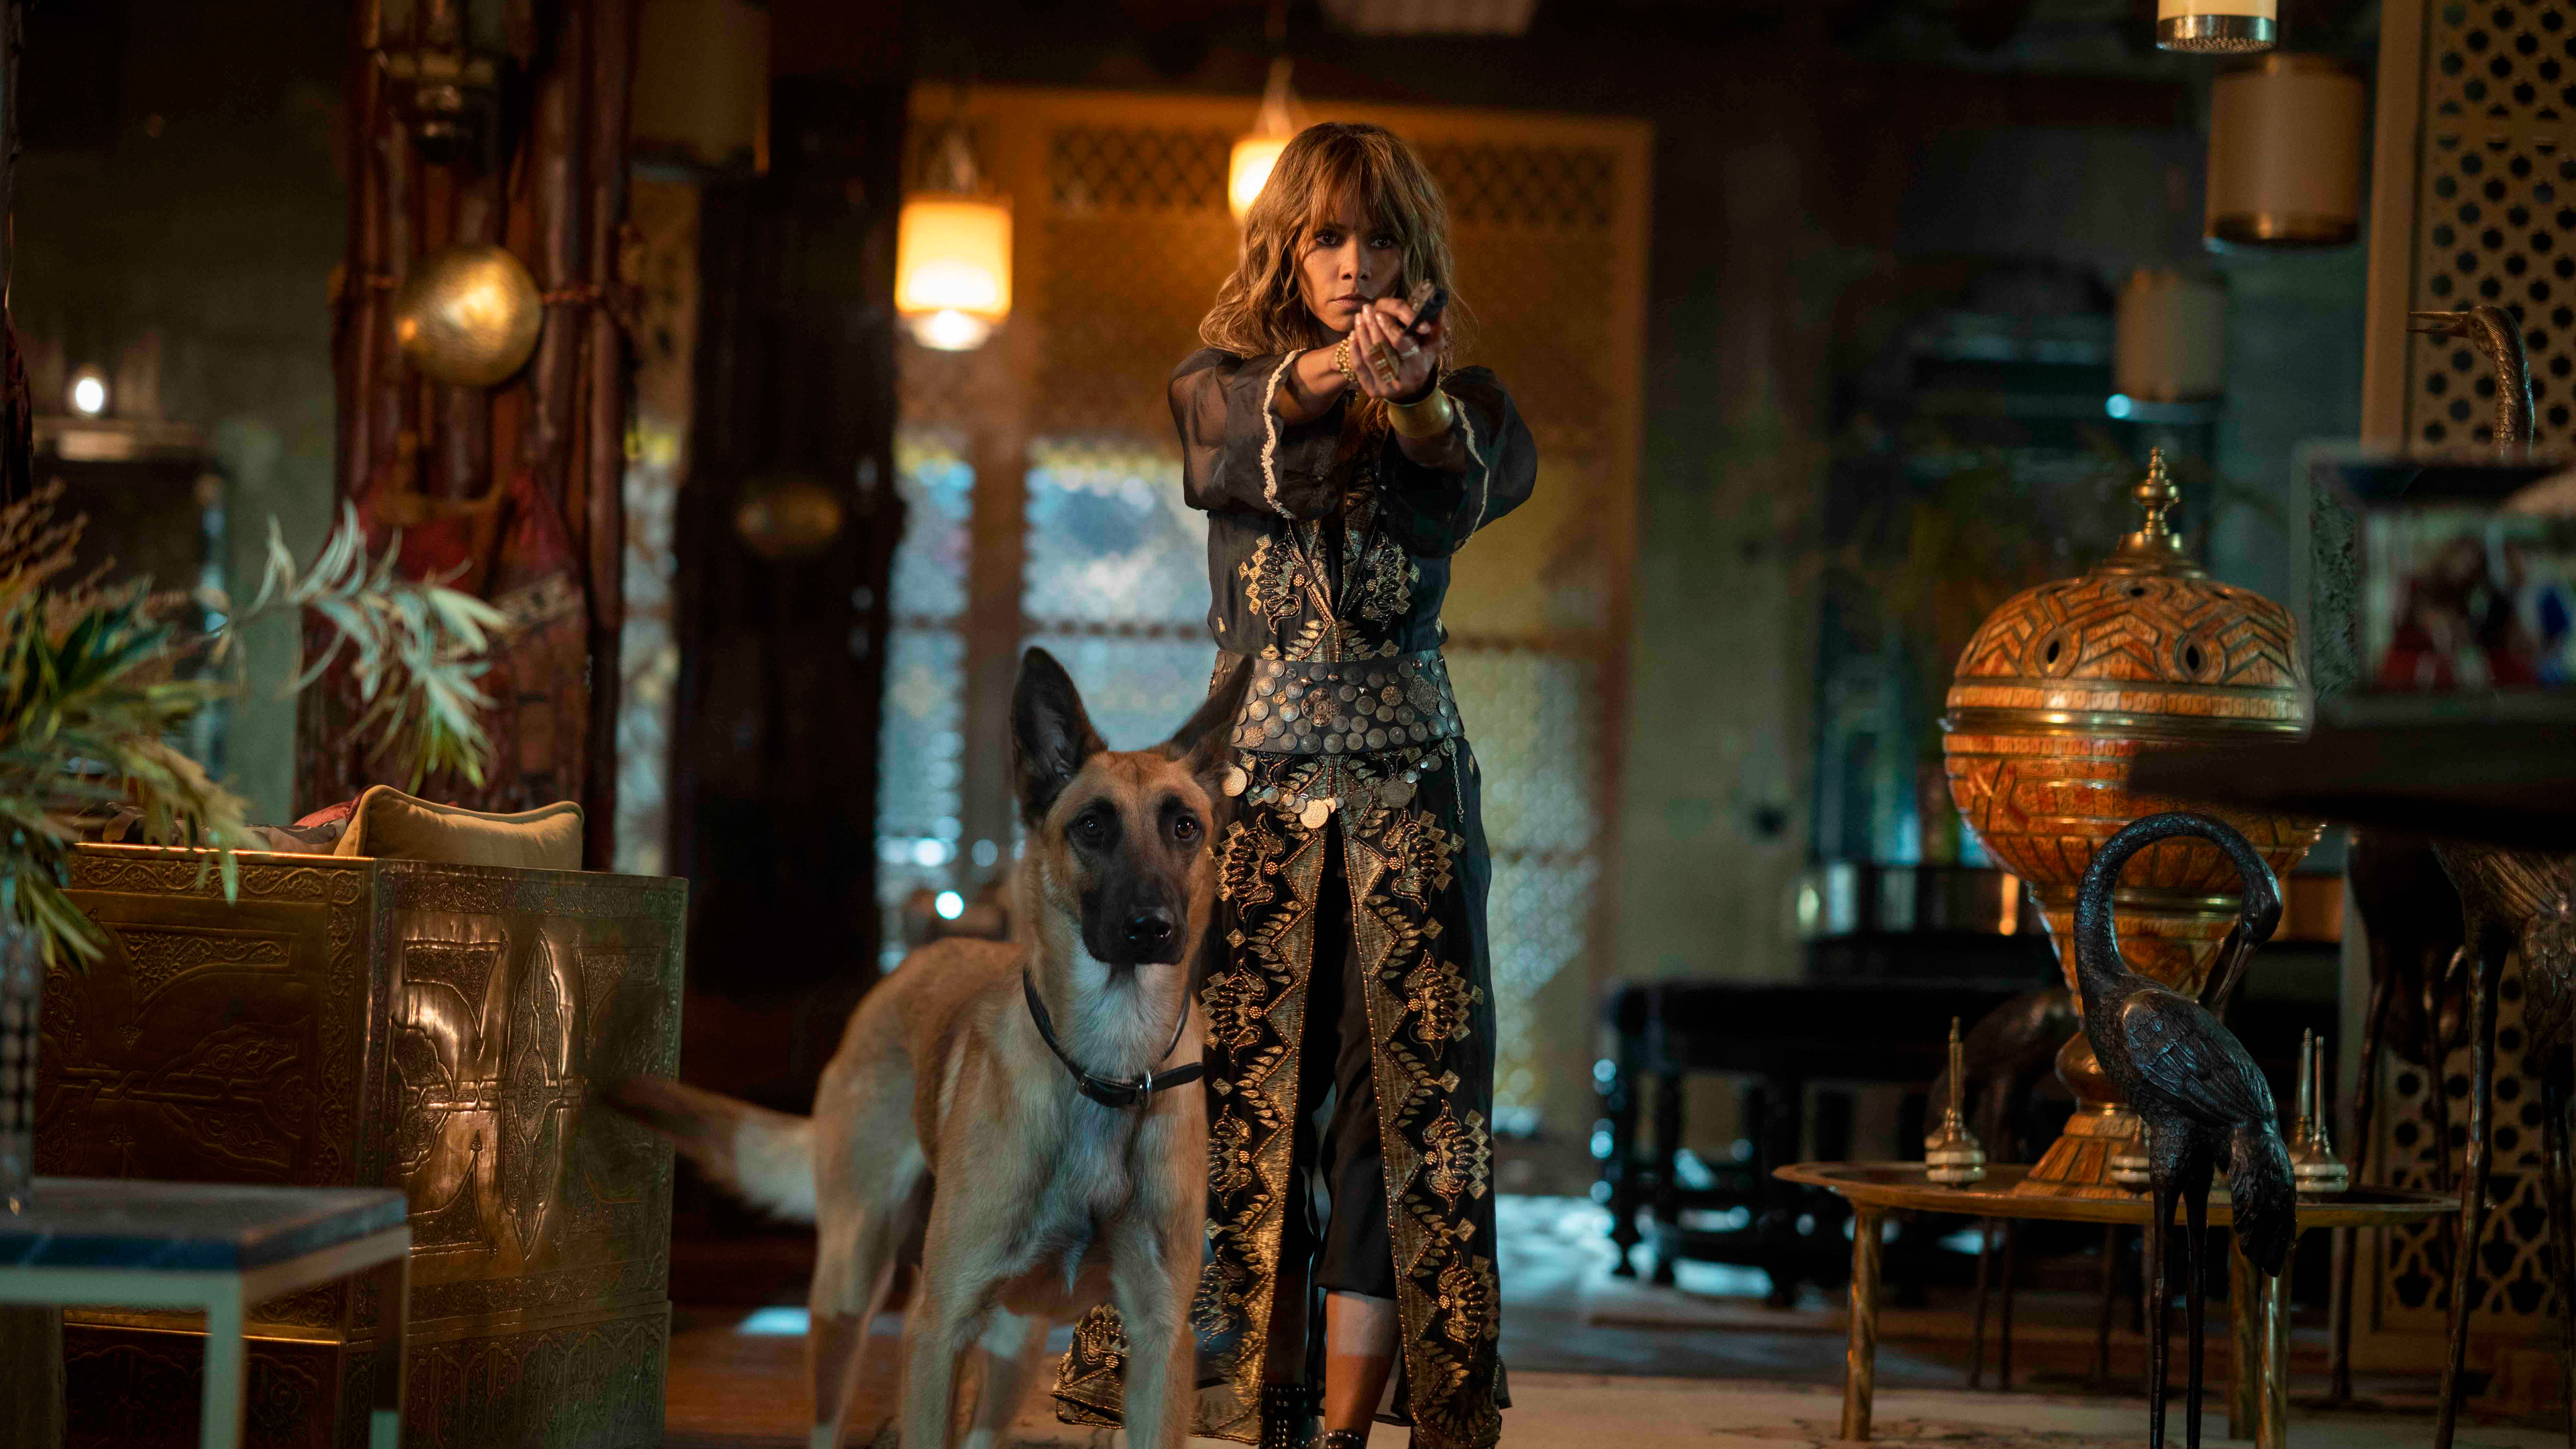 halle berry in john wick chapter 3 parabellum 2019 4k 1555208697 - Halle Berry In John Wick Chapter 3 Parabellum 2019 4k - movies wallpapers, john wick chapter 3 wallpapers, john wick 3 wallpapers, john wick 3 parabellum wallpapers, hd-wallpapers, halle berry wallpapers, 5k wallpapers, 4k-wallpapers, 2019 movies wallpapers